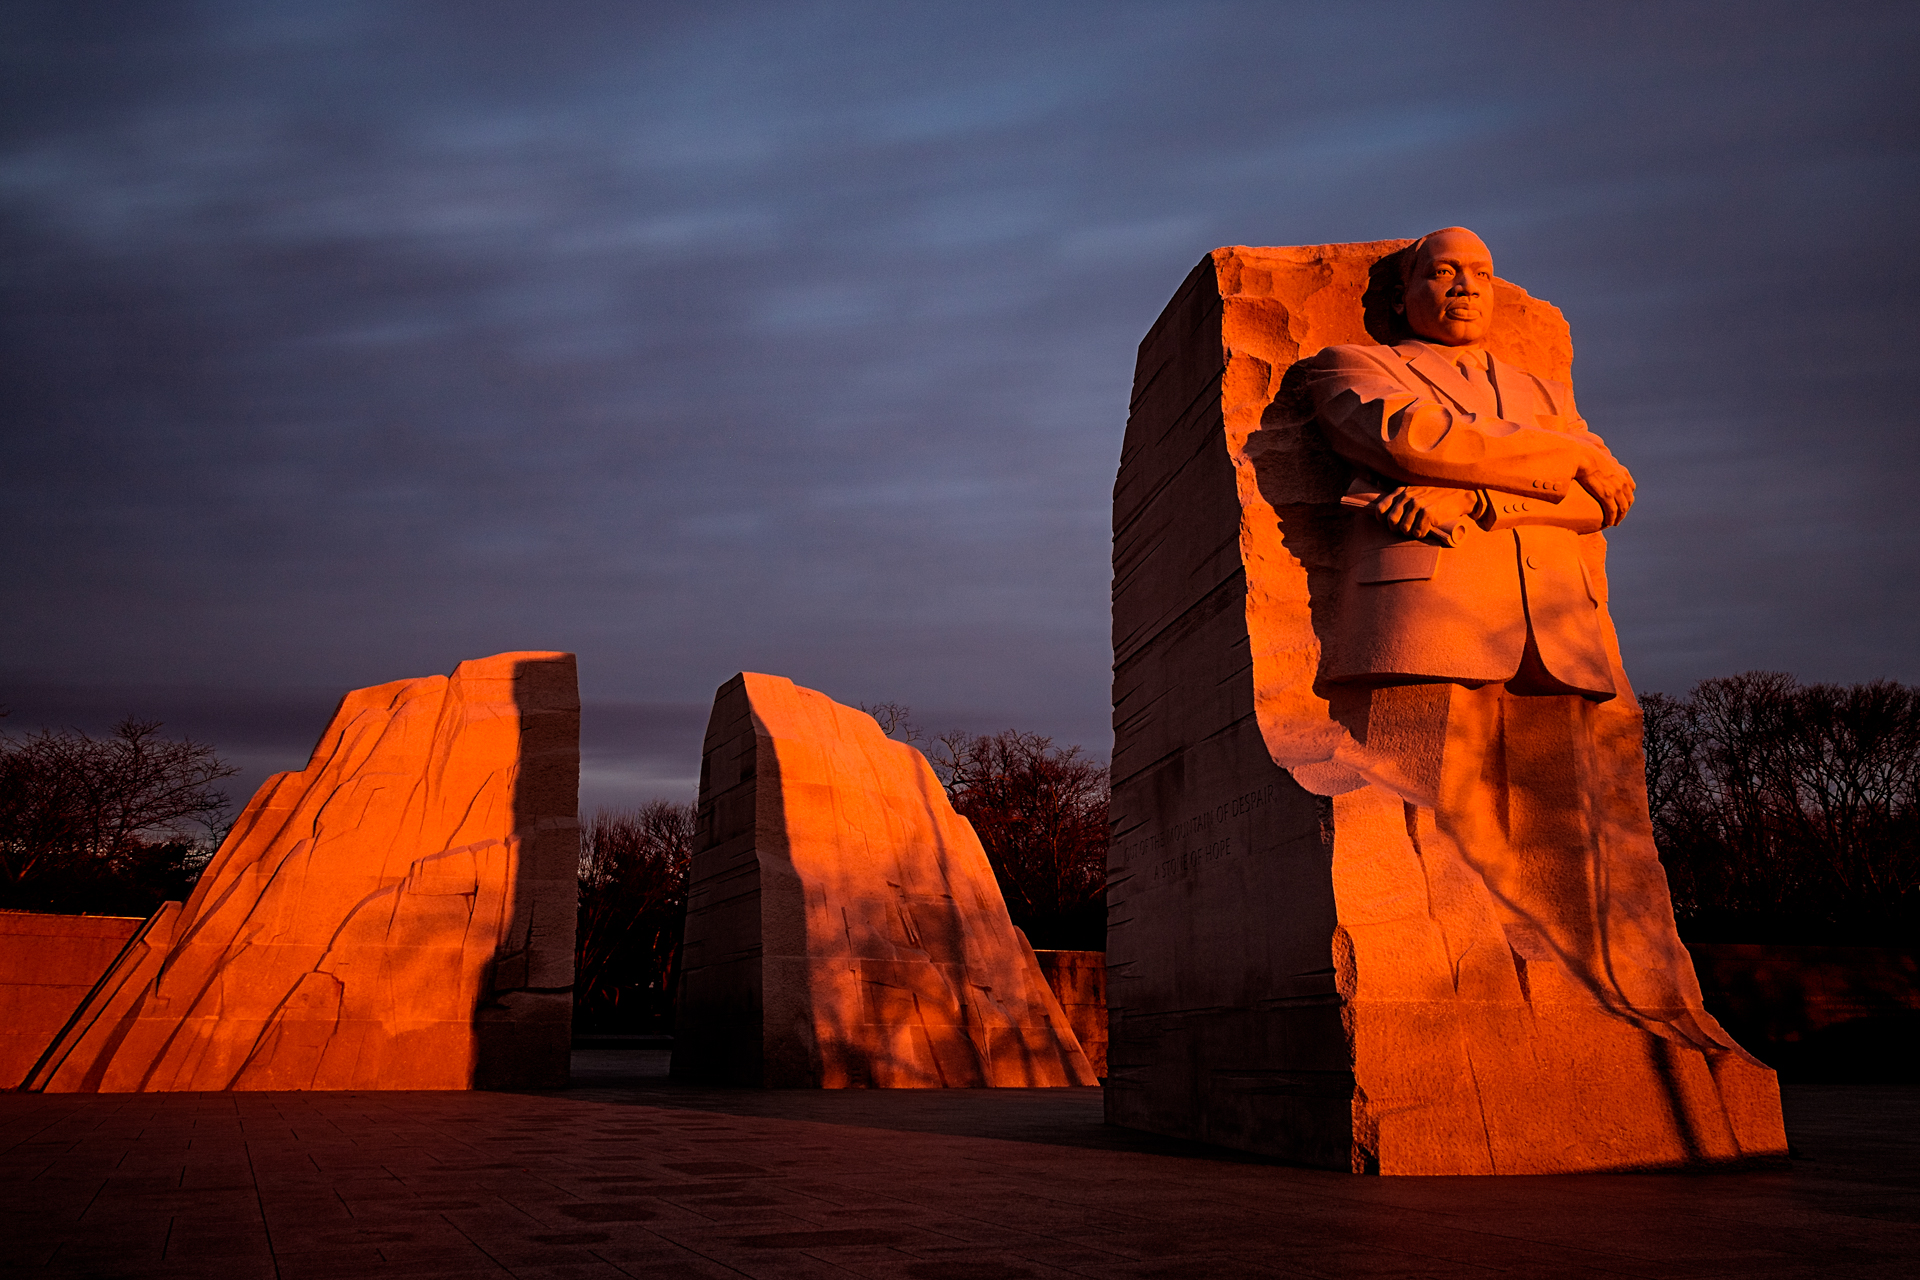 Awakening – A moody sunrise casts an orange glow at the MLK Memorial{&nbsp;}(Image: Zack Lewkowicz)<p></p>